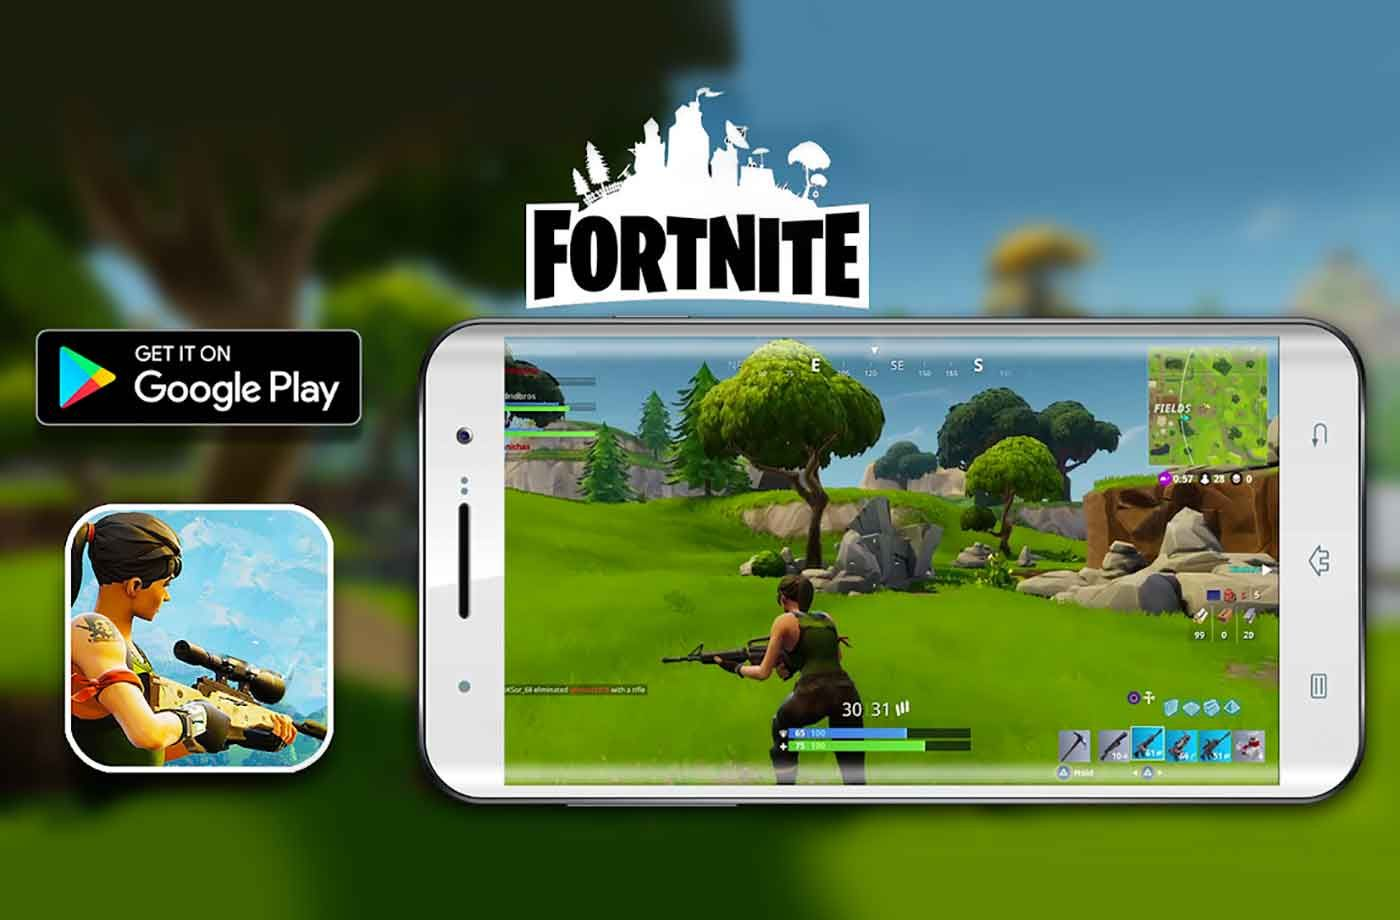 Fortnite Of Battle Royale Is A Wonderful Game Adventure And Speed Fights With Power Royale And Your Teams Android Mobile Games Fortnite Google Play